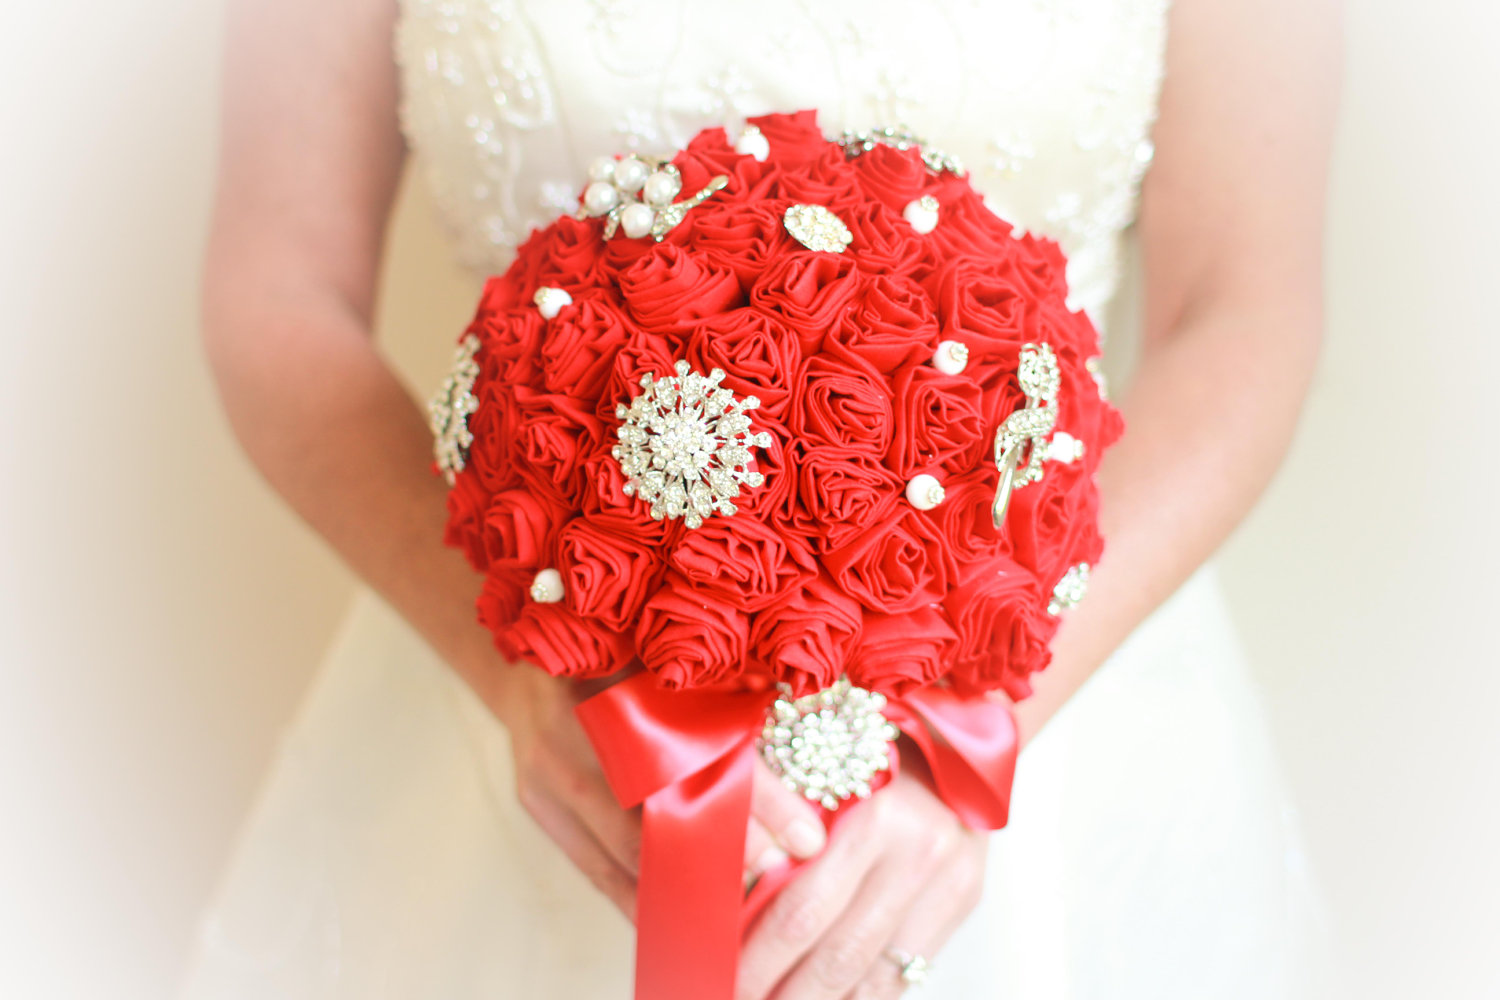 Handmade-weddings-how-to-style-a-romantic-winter-wedding-eco-bouquet-red-ivory.original